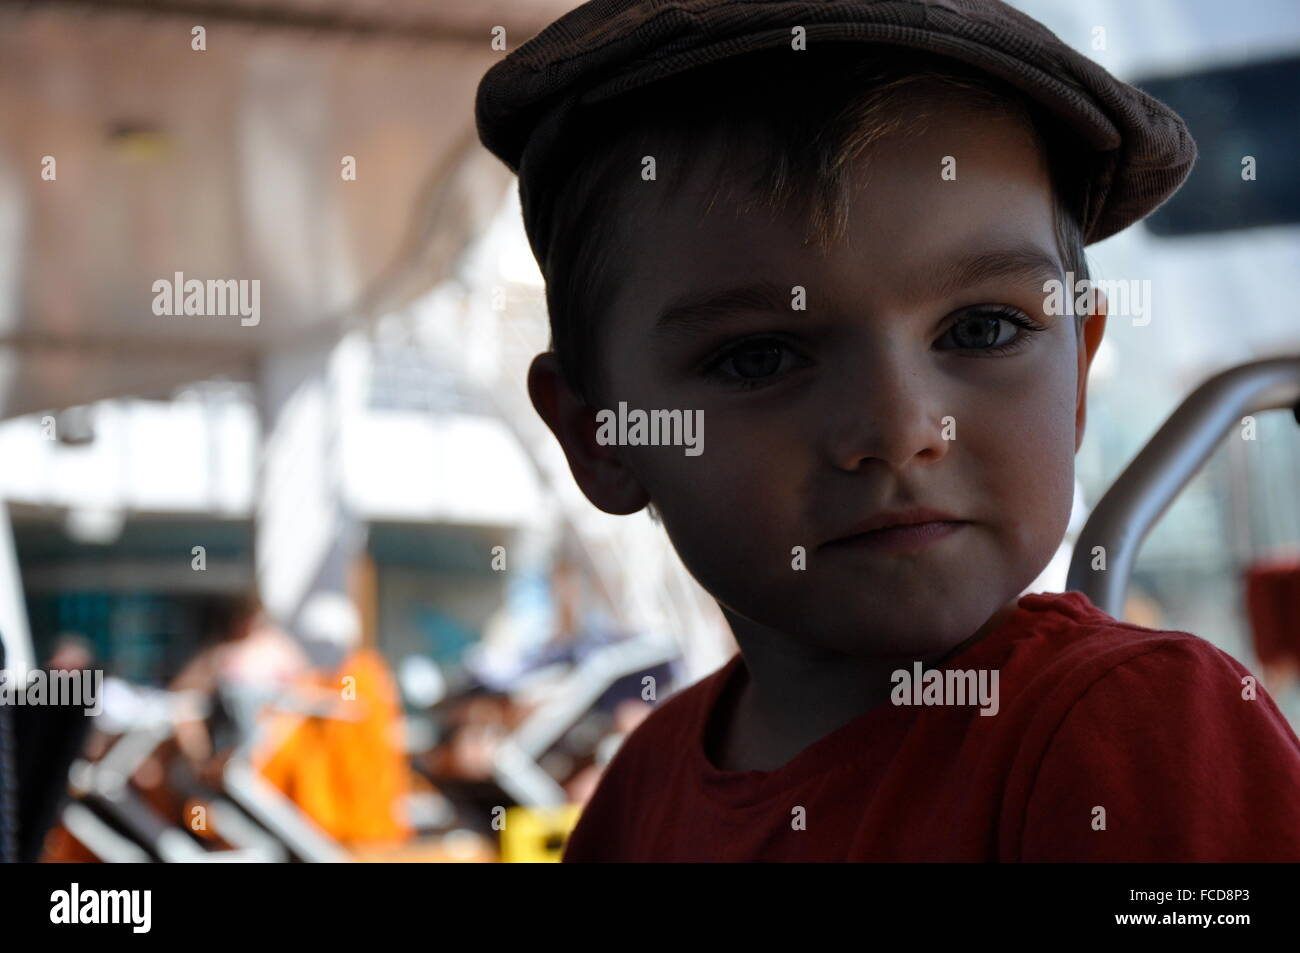 Portrait Of Cute Boy in Amusement Park Photo Stock